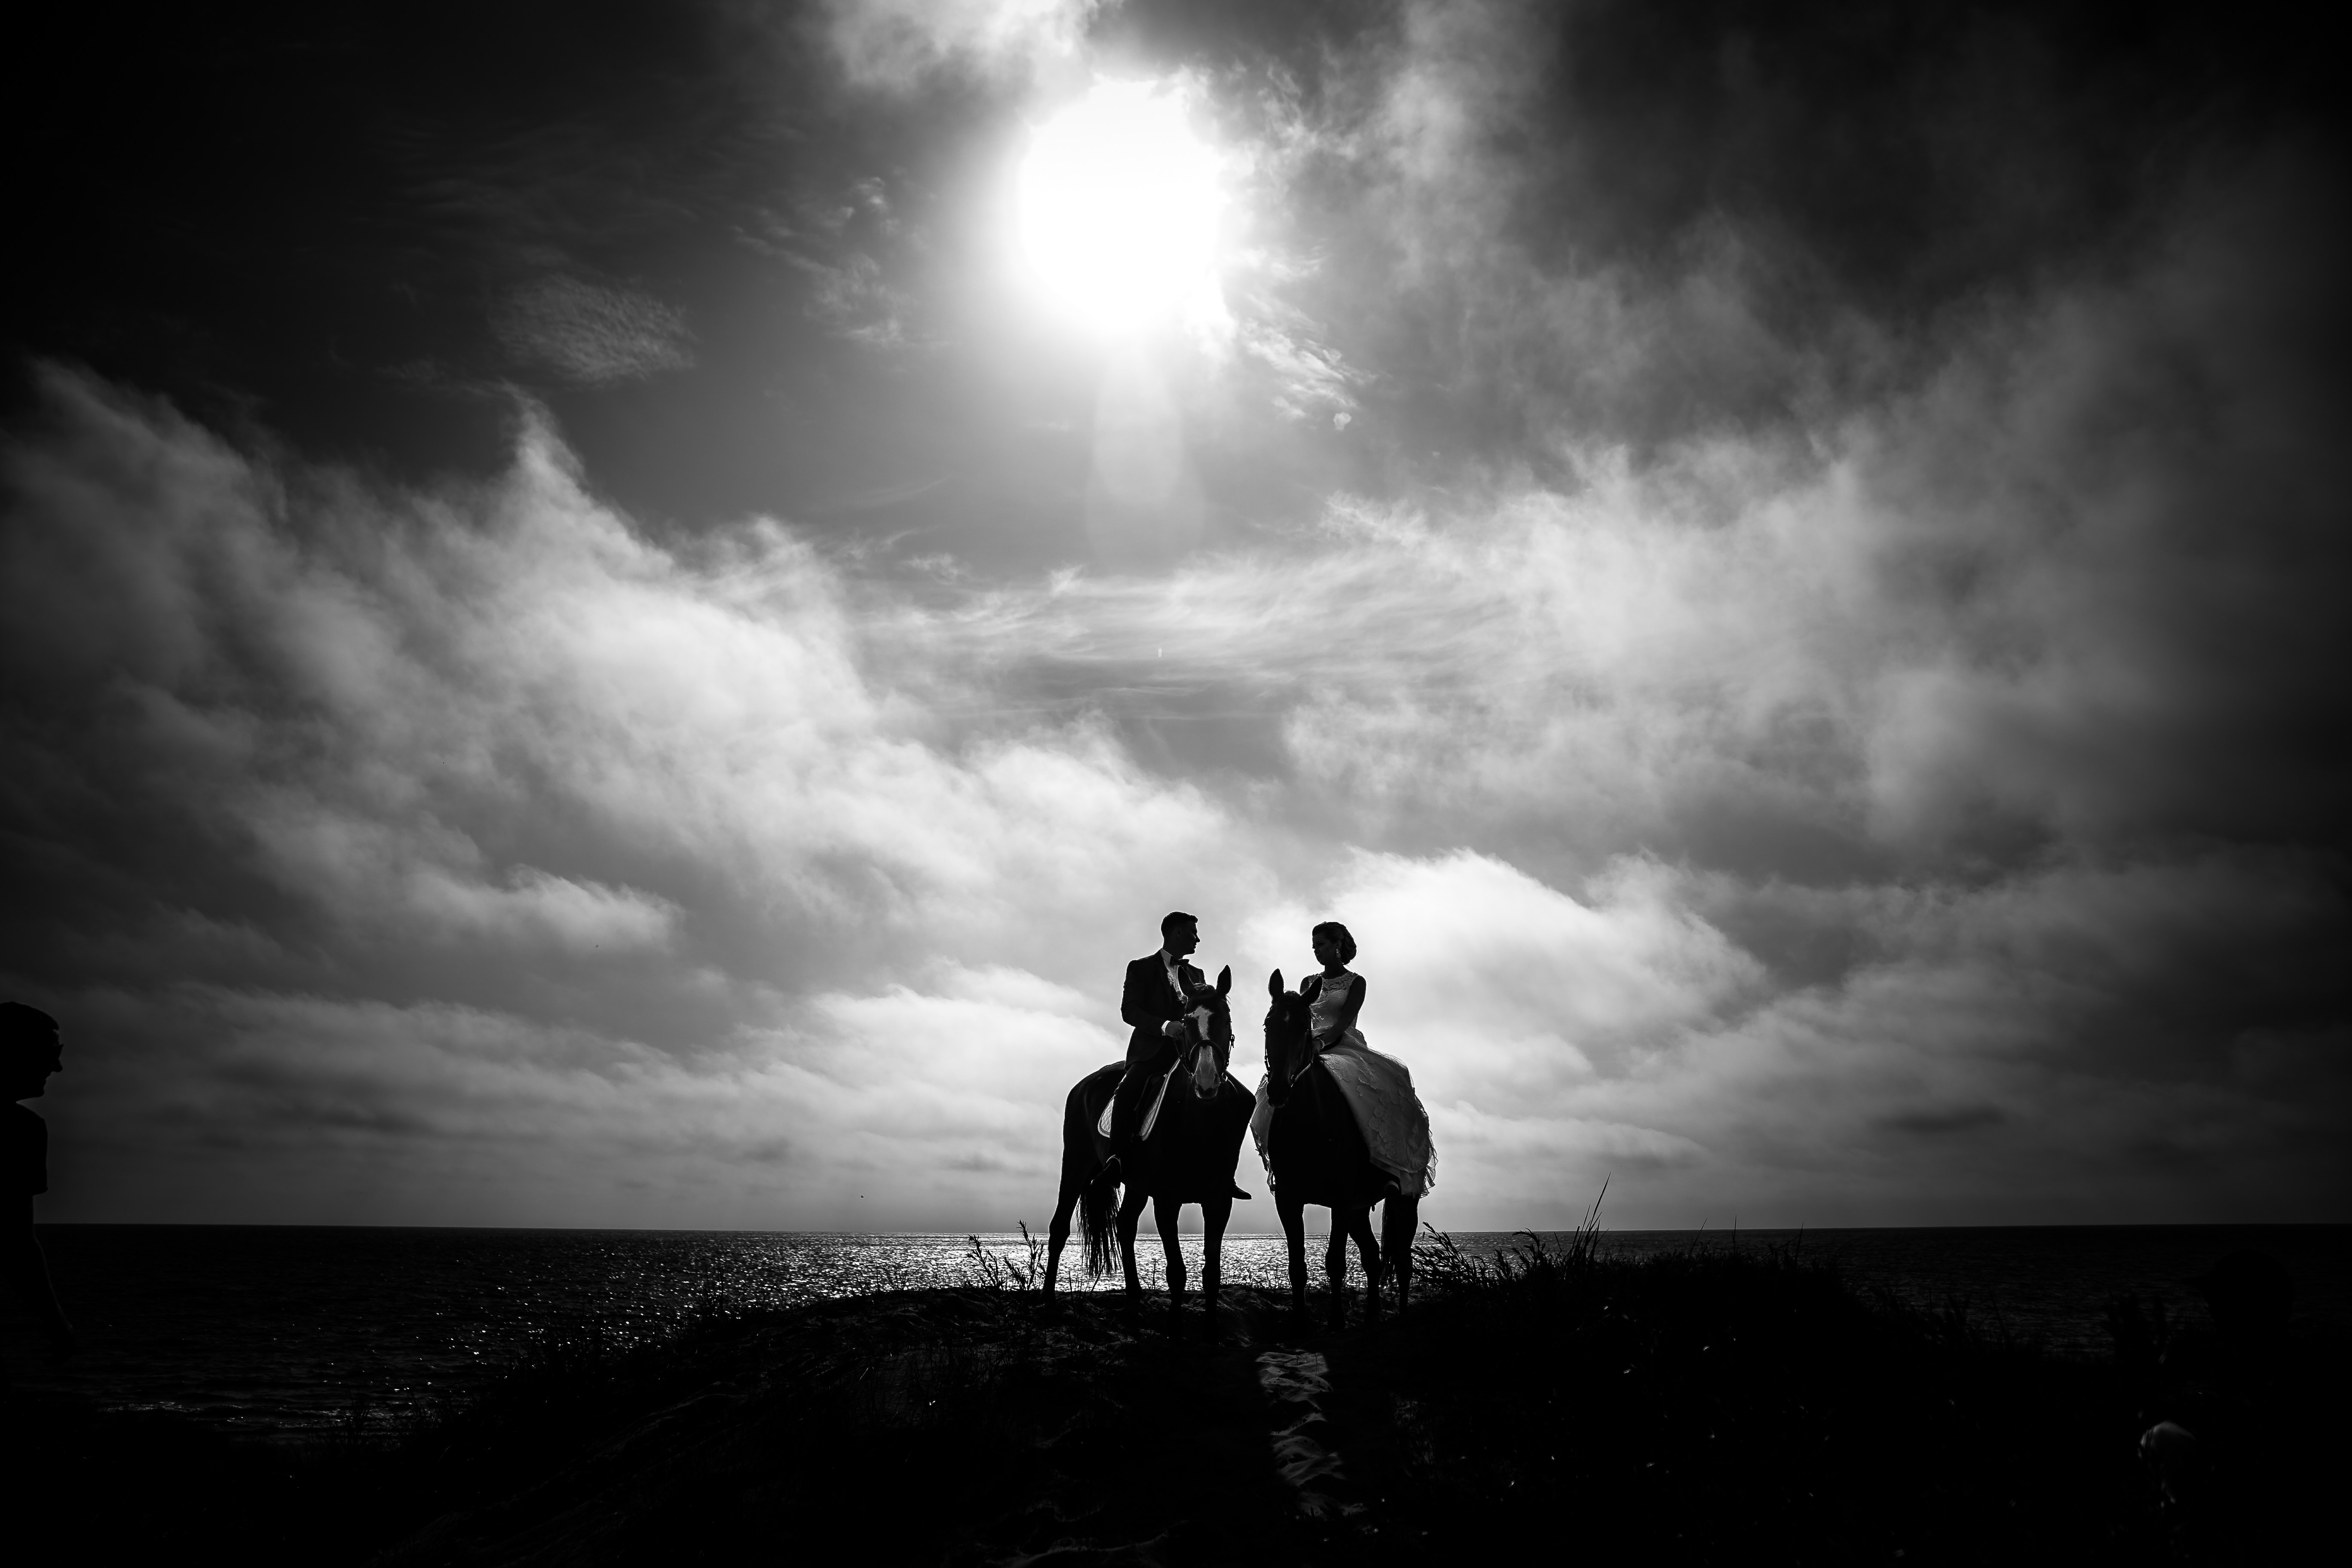 Free Photo Grayscale Photography Of Couple Riding On Horse With Body Of Water And Sky As Background Ocean Water Sunset Free Download Jooinn